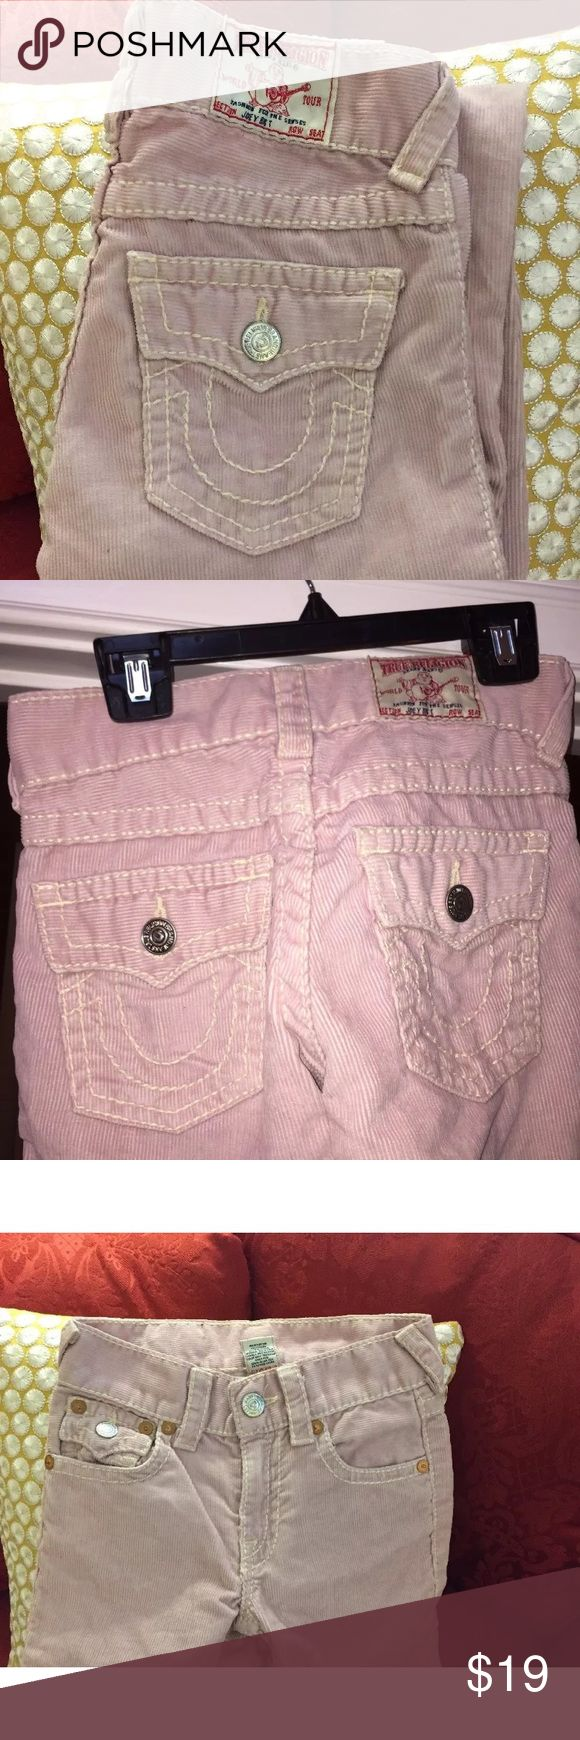 "True religion girls jean corduroys size 10 These are real cute flare leg pale pink true religion girls cords inseam 25"" approx in excellent preowned condition True Religion Bottoms Jeans"